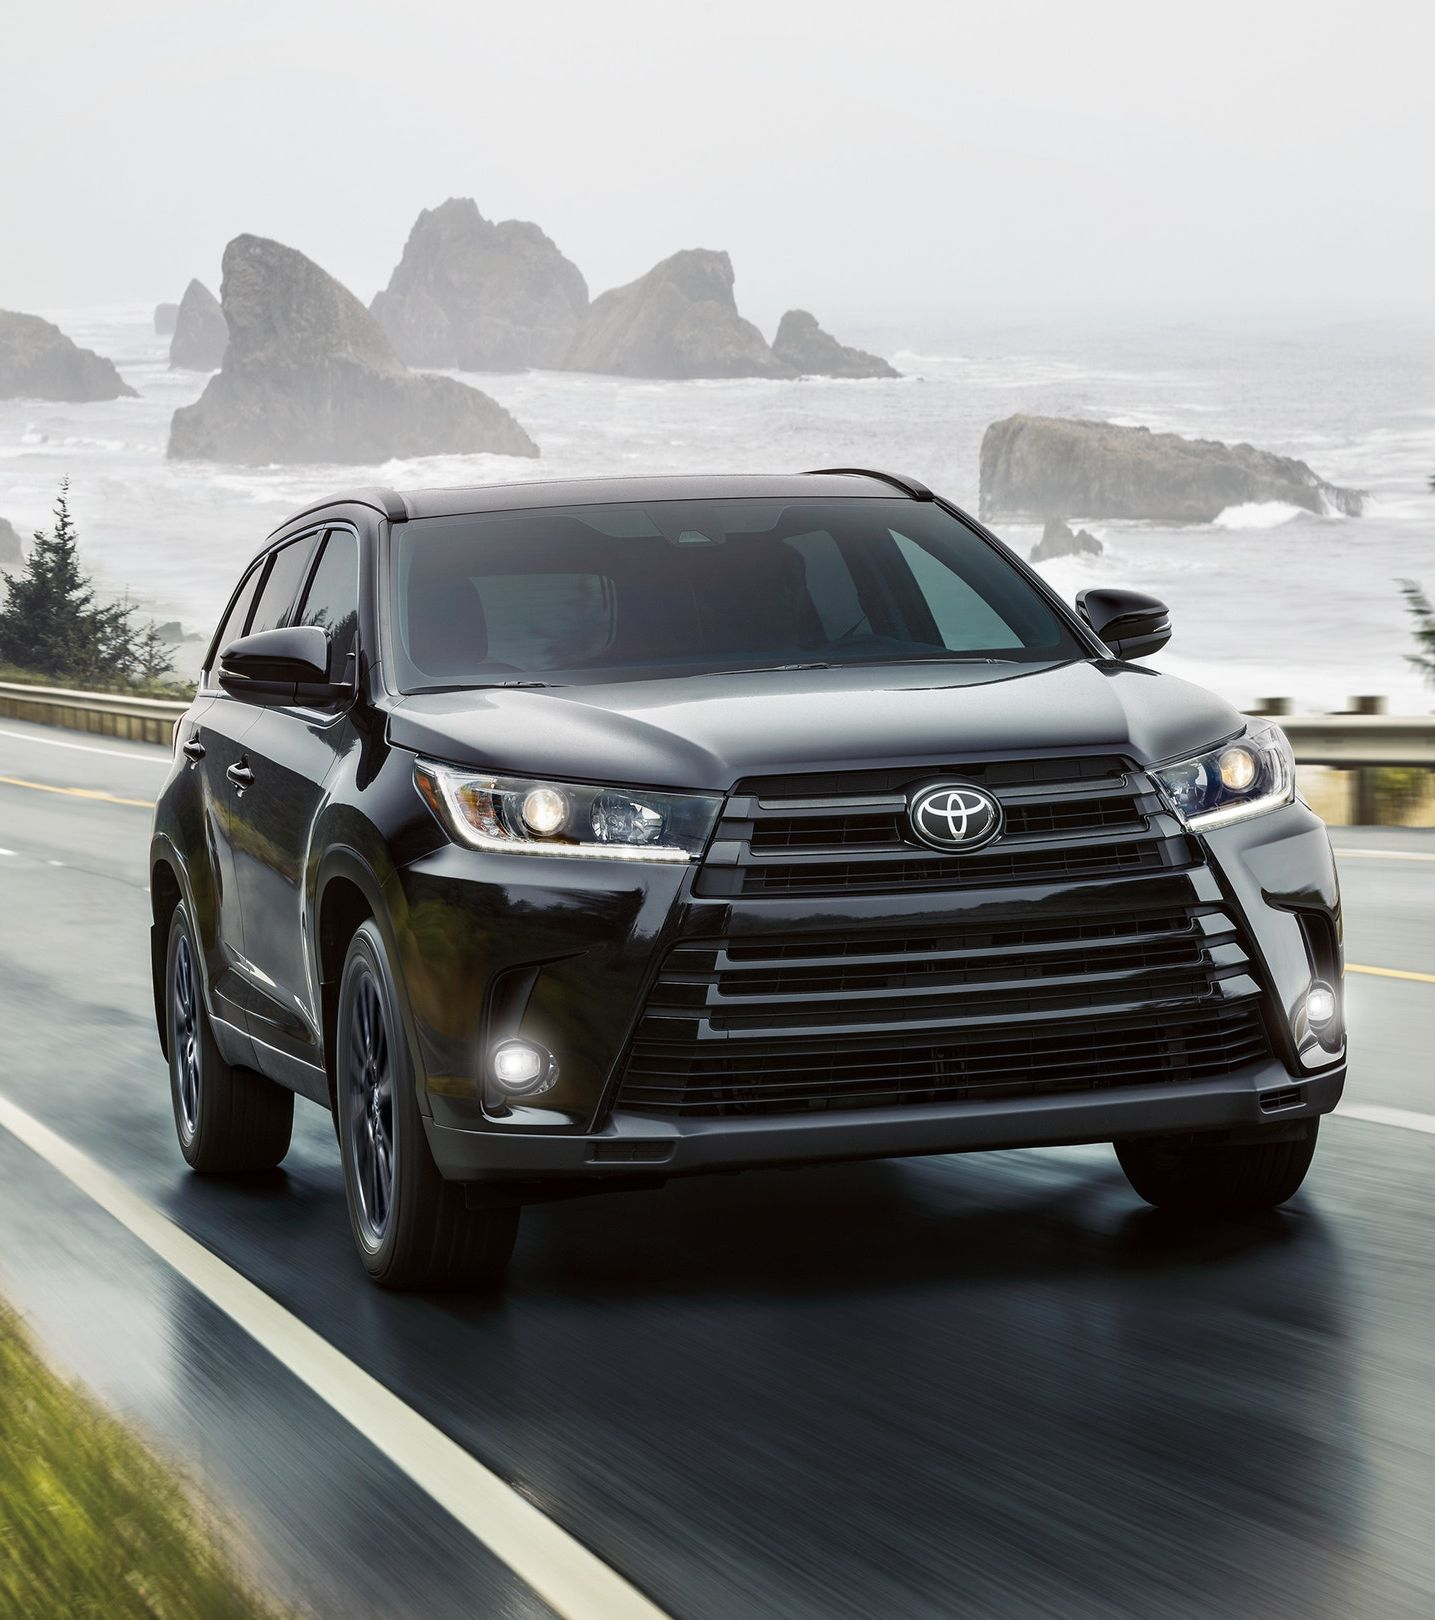 2019 Toyota Highlander for Sale near Green, OH